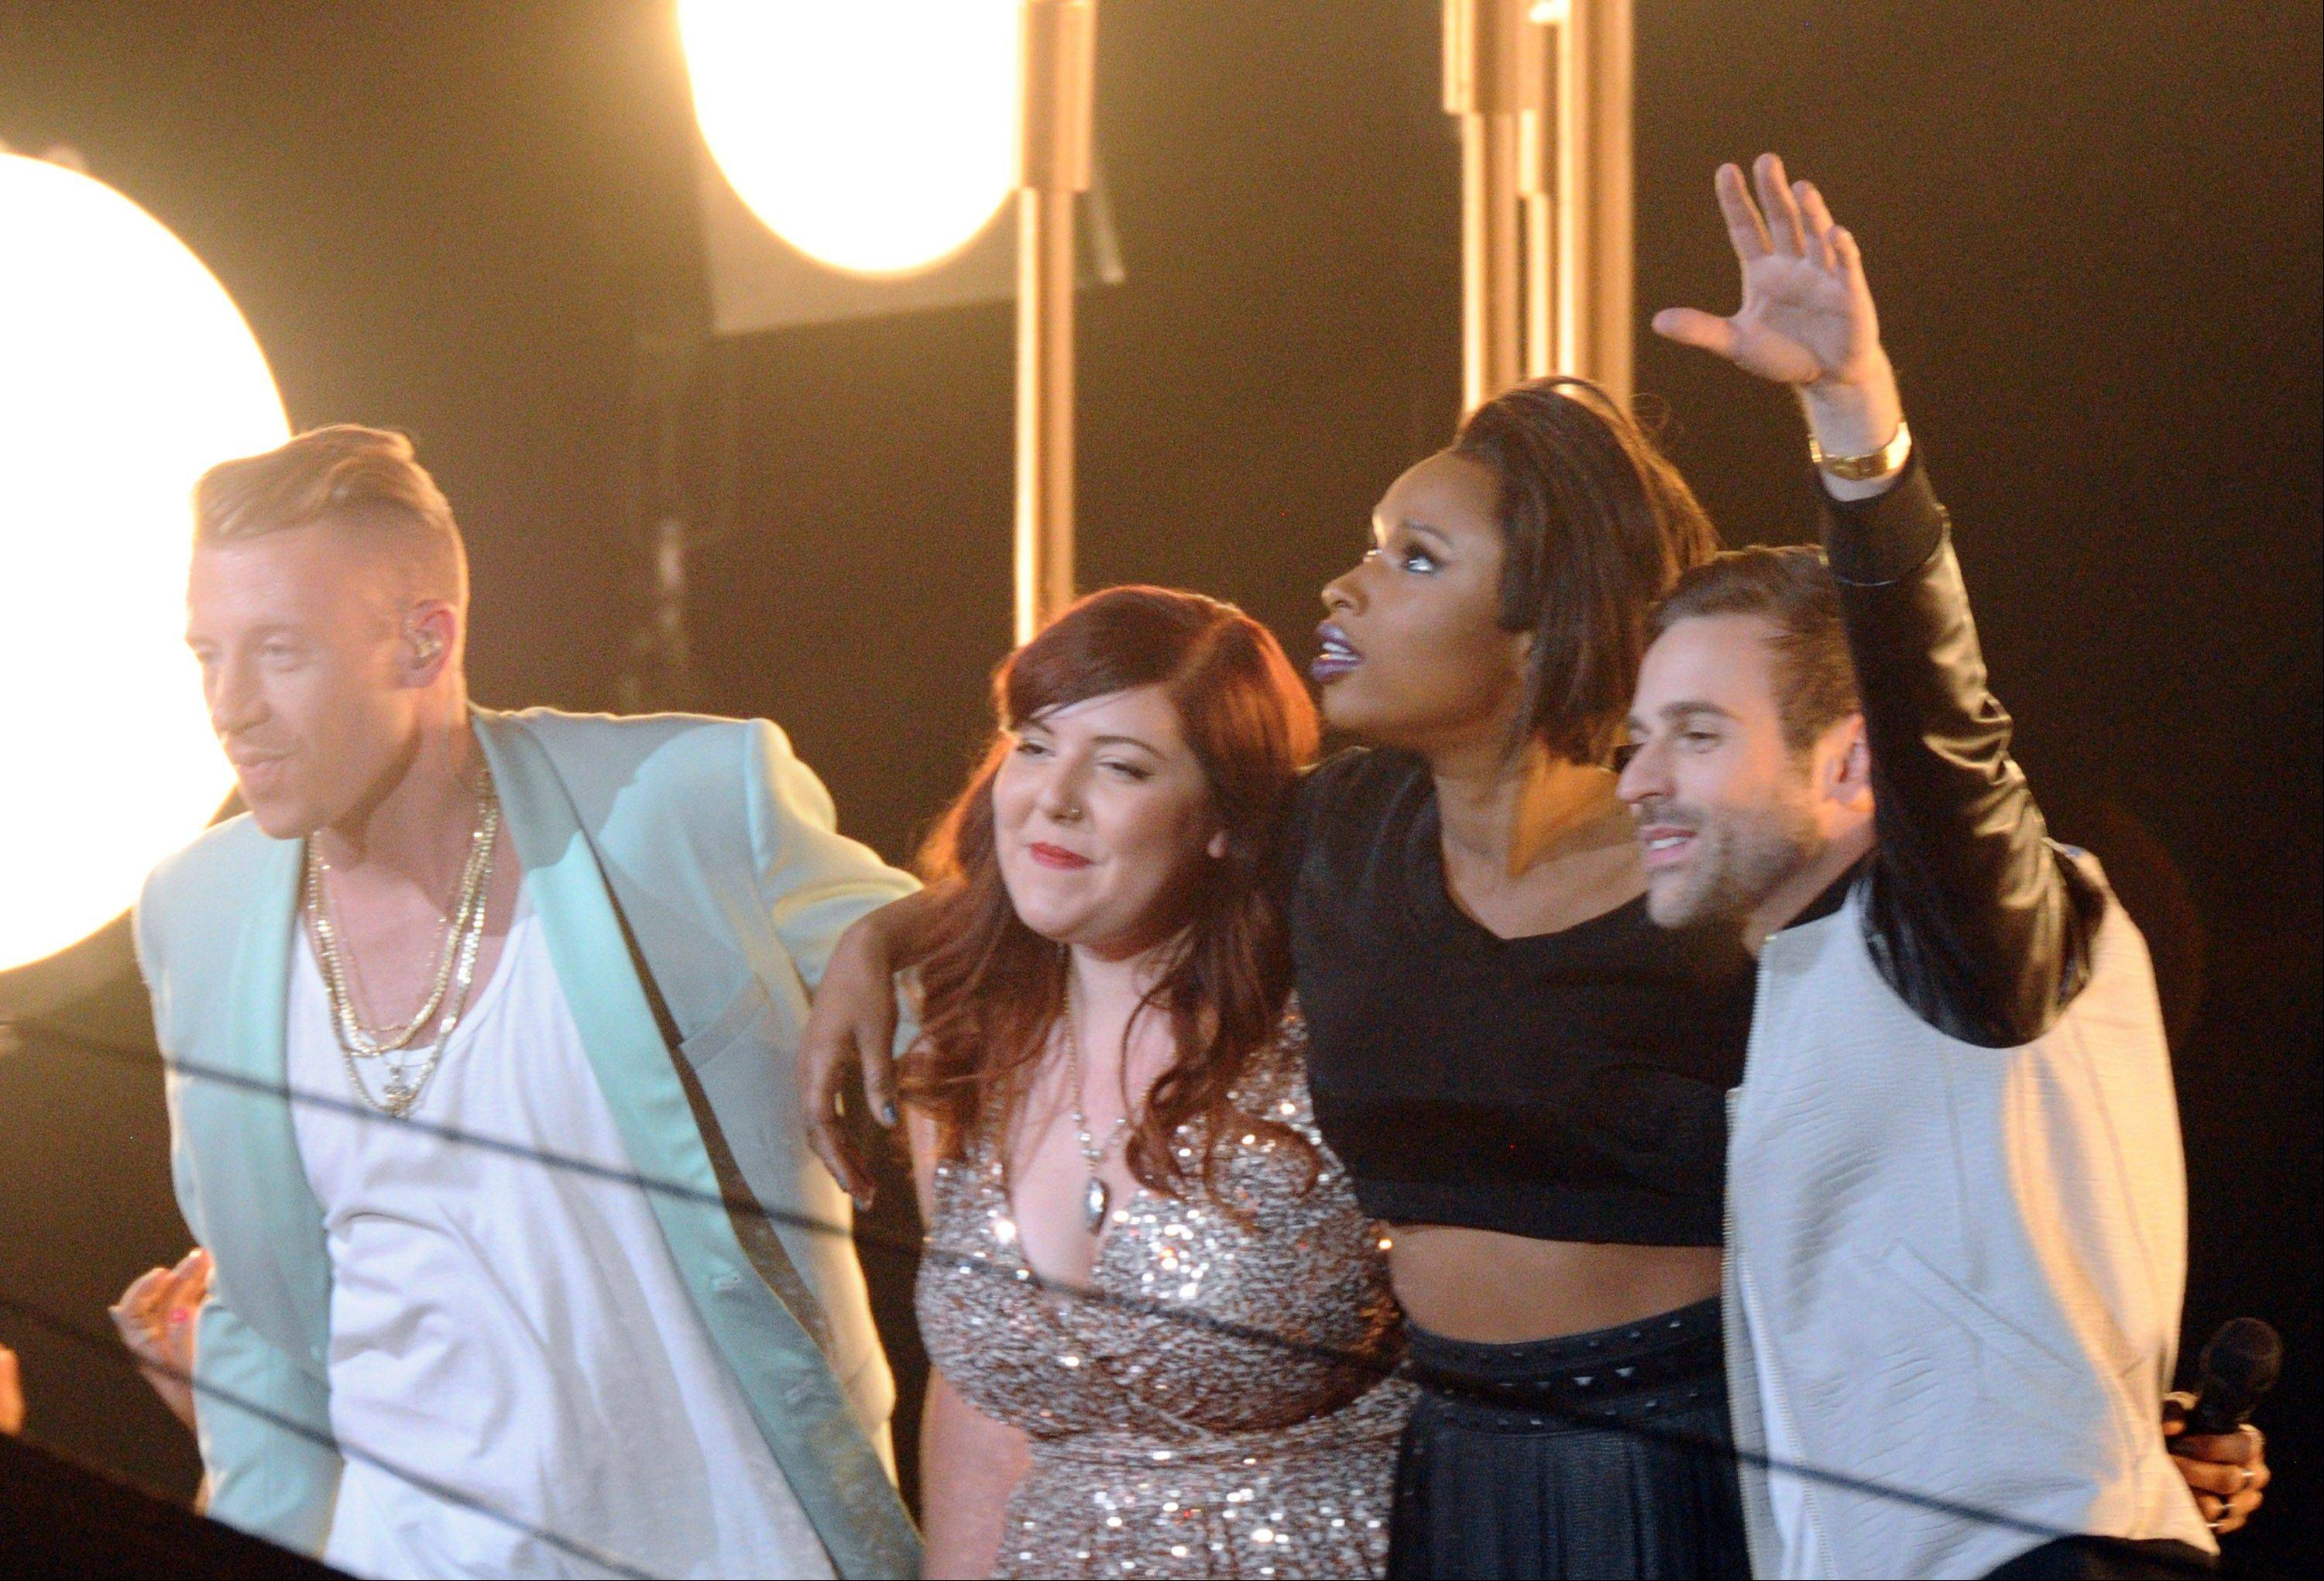 Macklemore, from left, Mary Lambert, Jennifer Hudson and Ryan Lewis perform at the MTV Video Music Awards on Sunday, Aug. 25, 2013, at the Barclays Center in the Brooklyn borough of New York.